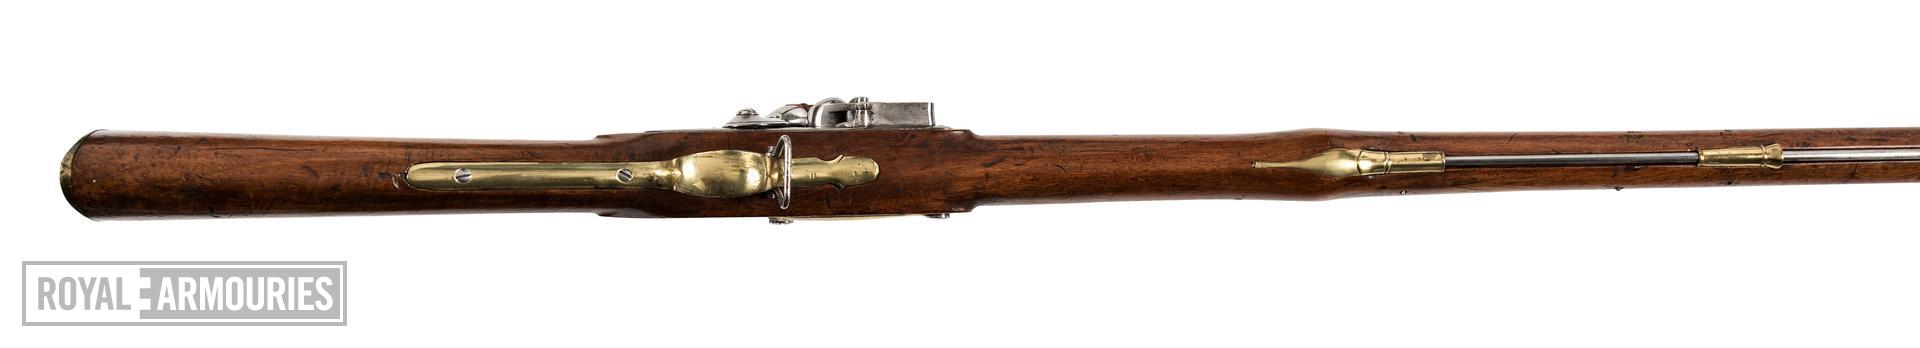 Flintlock muzzle-loading military musket, England, about 1800 (XII.6755)